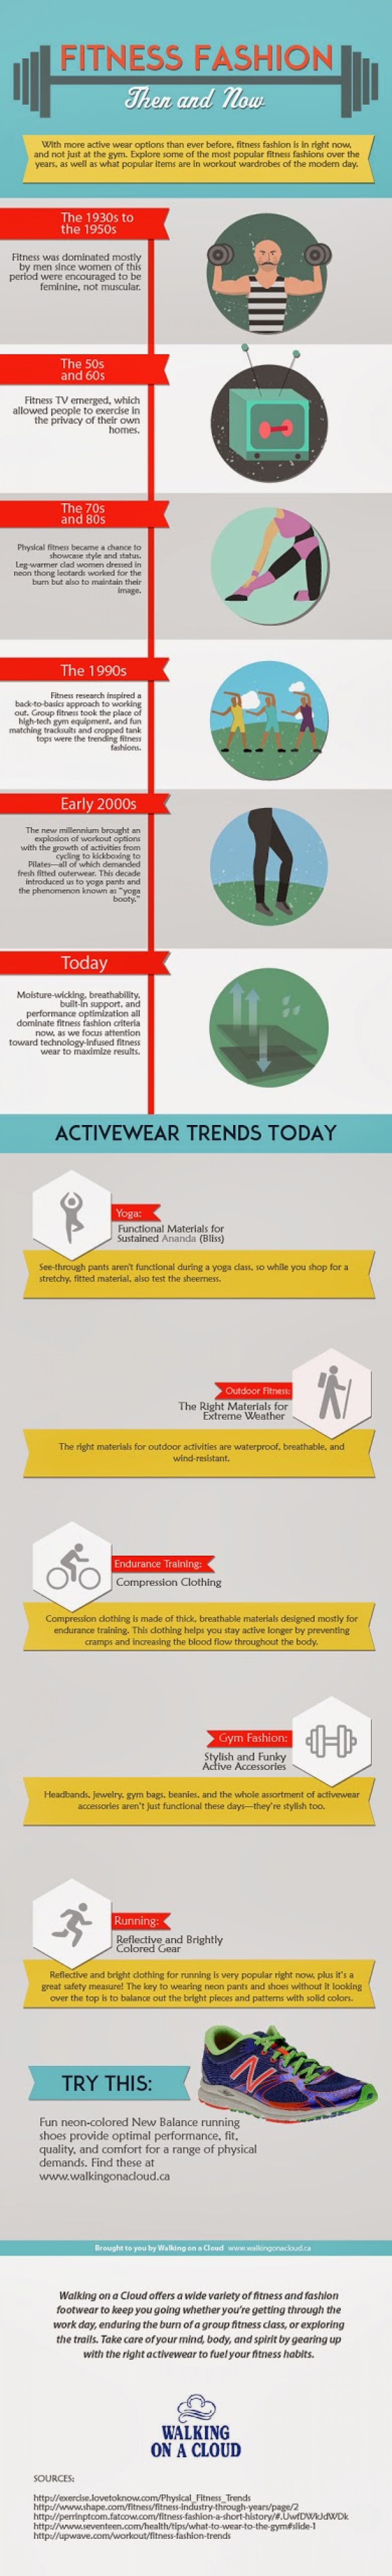 Fitness Fashion Then and Now Infographic